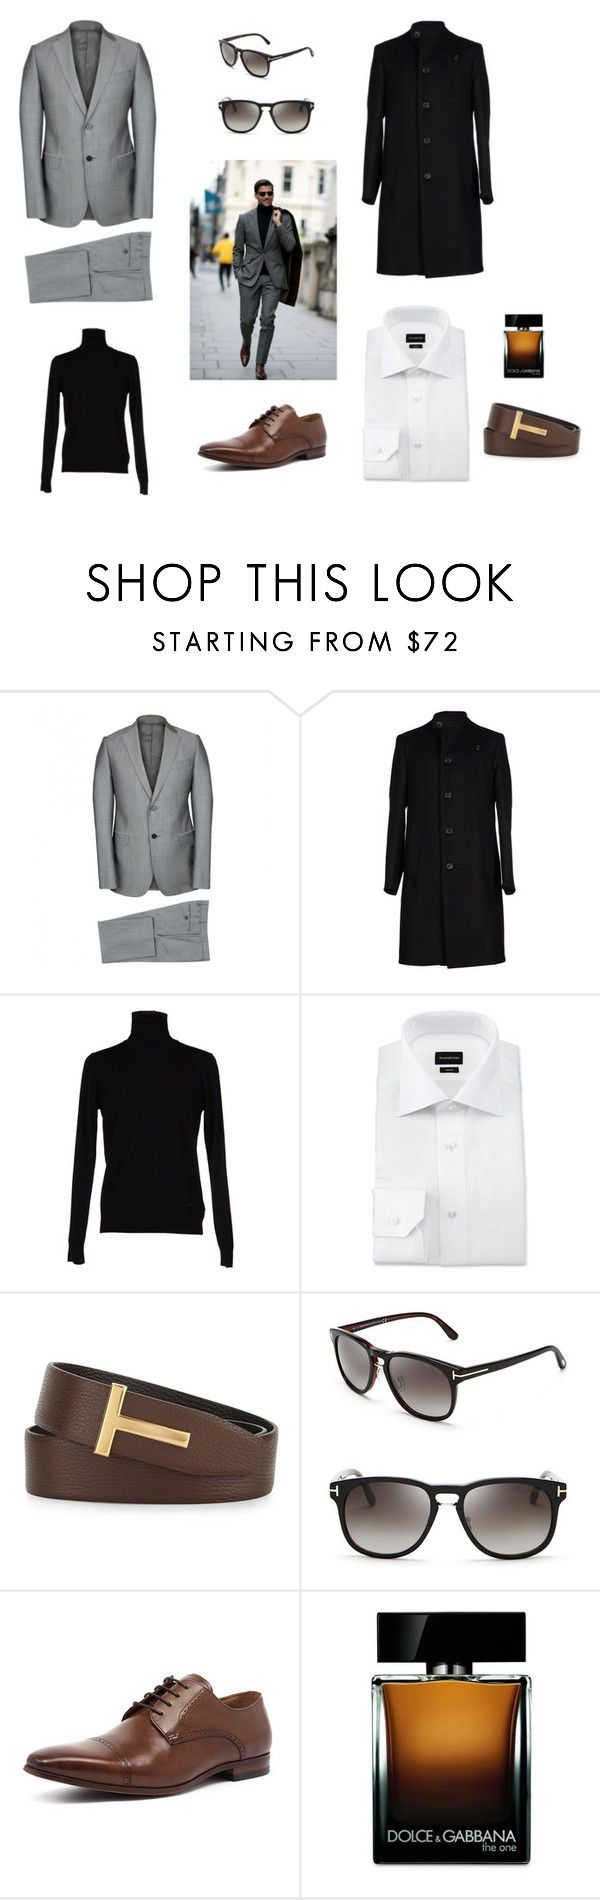 """Autumn in London"" by dpintainha on Polyvore featuring Armani Collezioni, Ermenegildo Zegna, Tom Ford, Florsheim, Dolce&Gabbana, men's fashion and menswear"